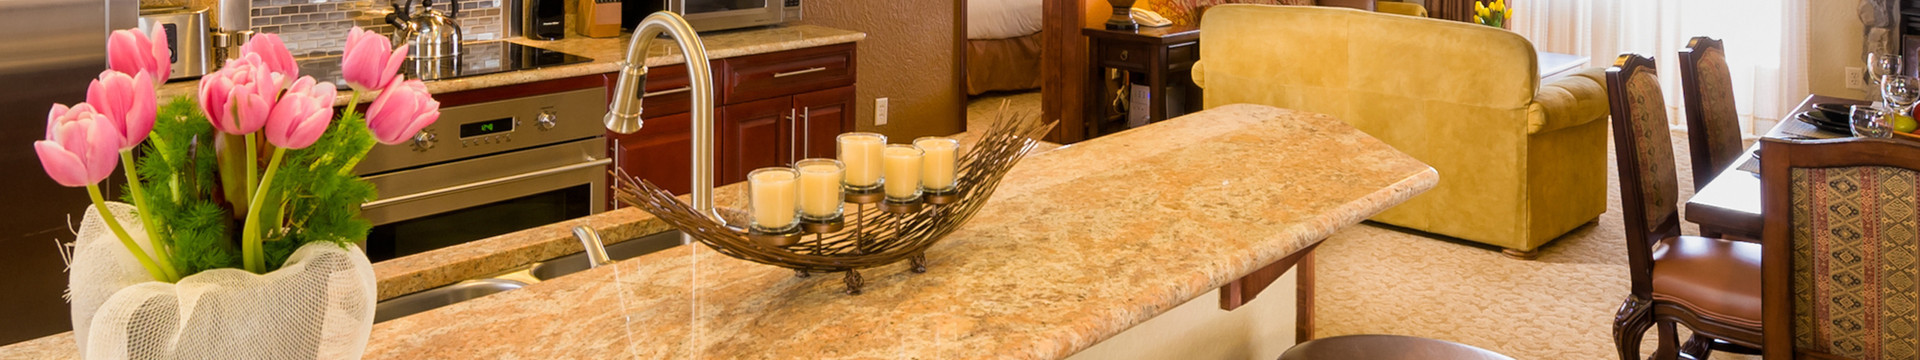 Luxury Suites at our Park City, Utah Hotel and Ski Resort | Full KItchen in Luxury Suite